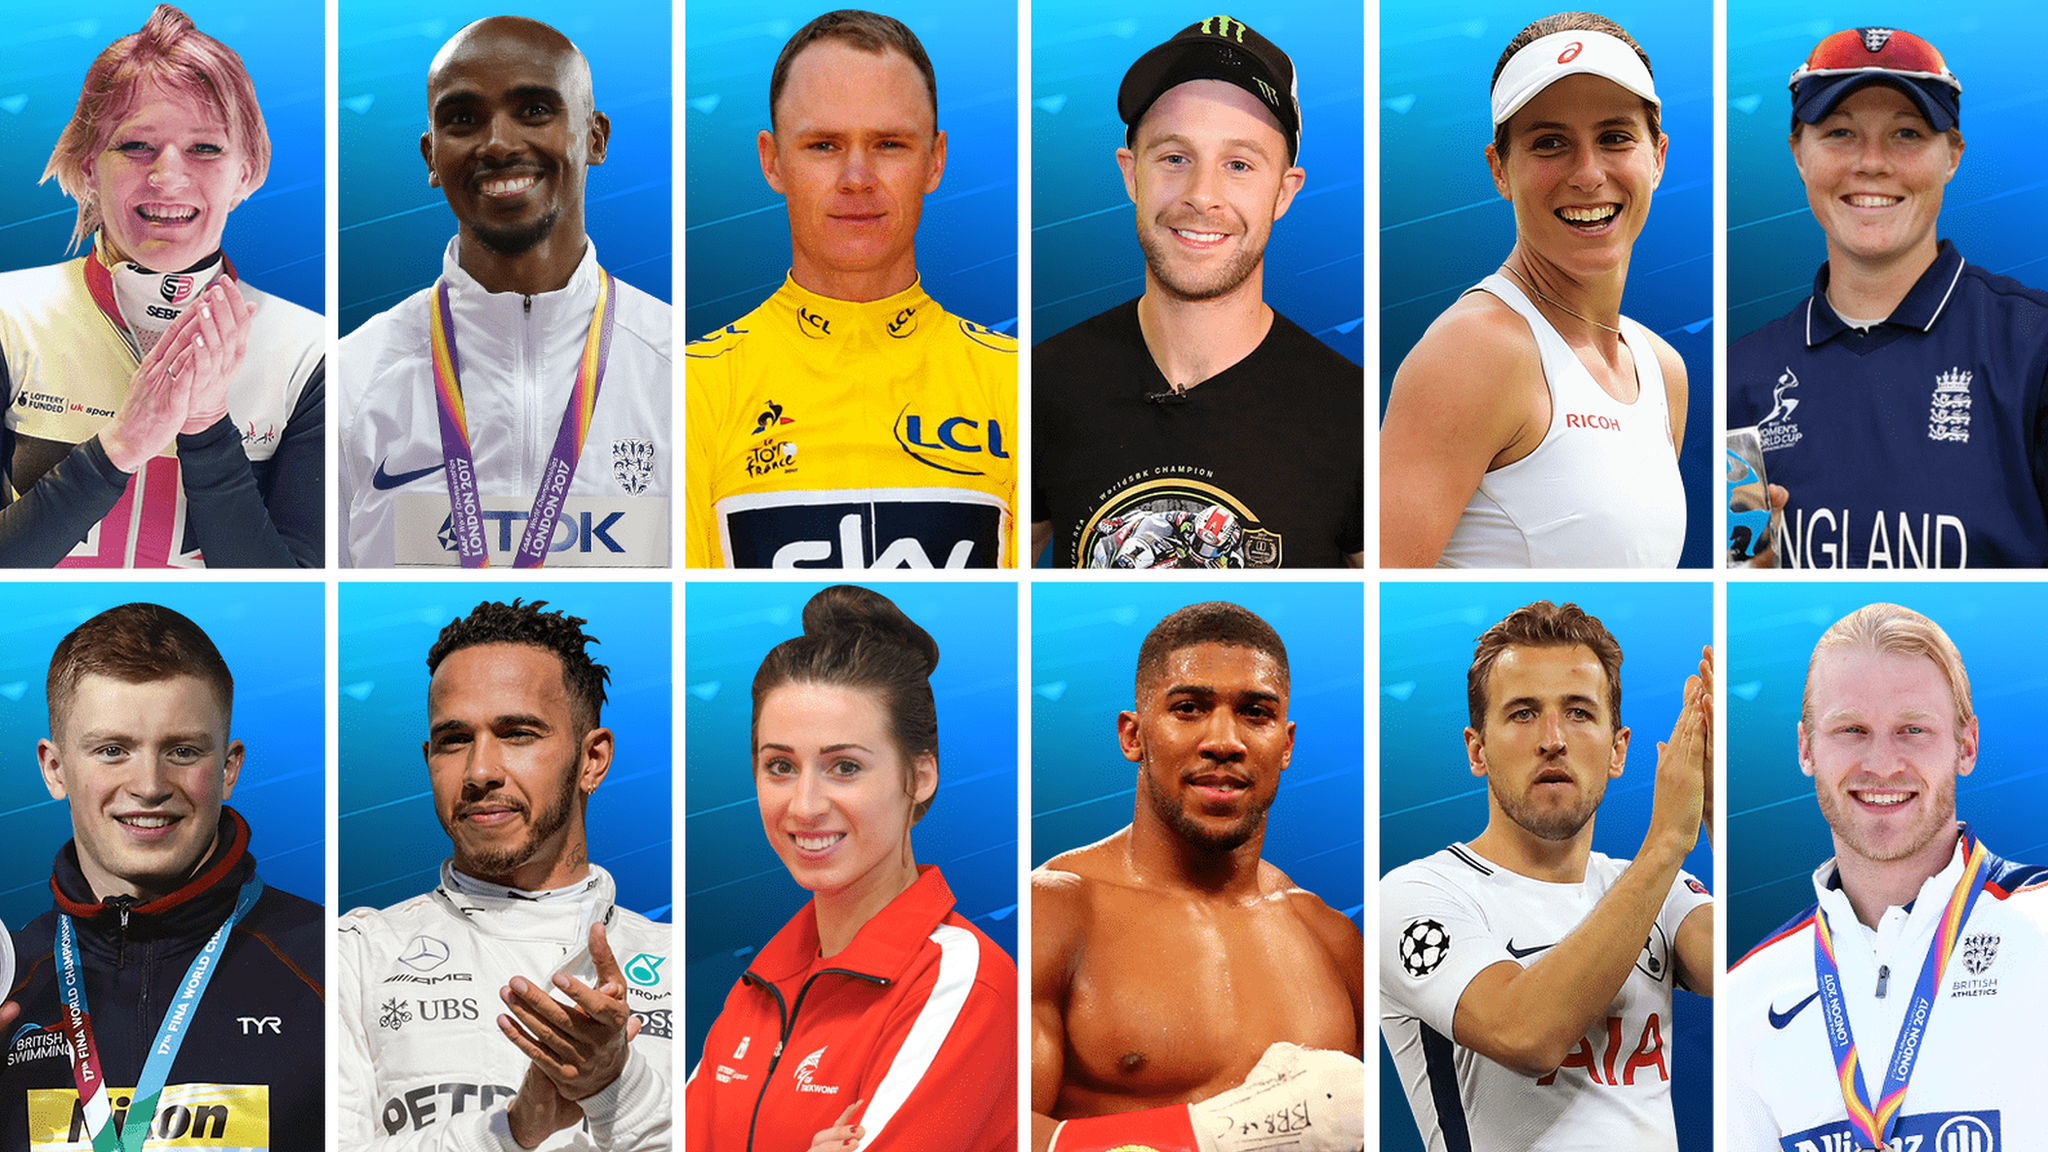 BBC Sports Personality of the Year 2017: Shortlist of 12 revealed for award